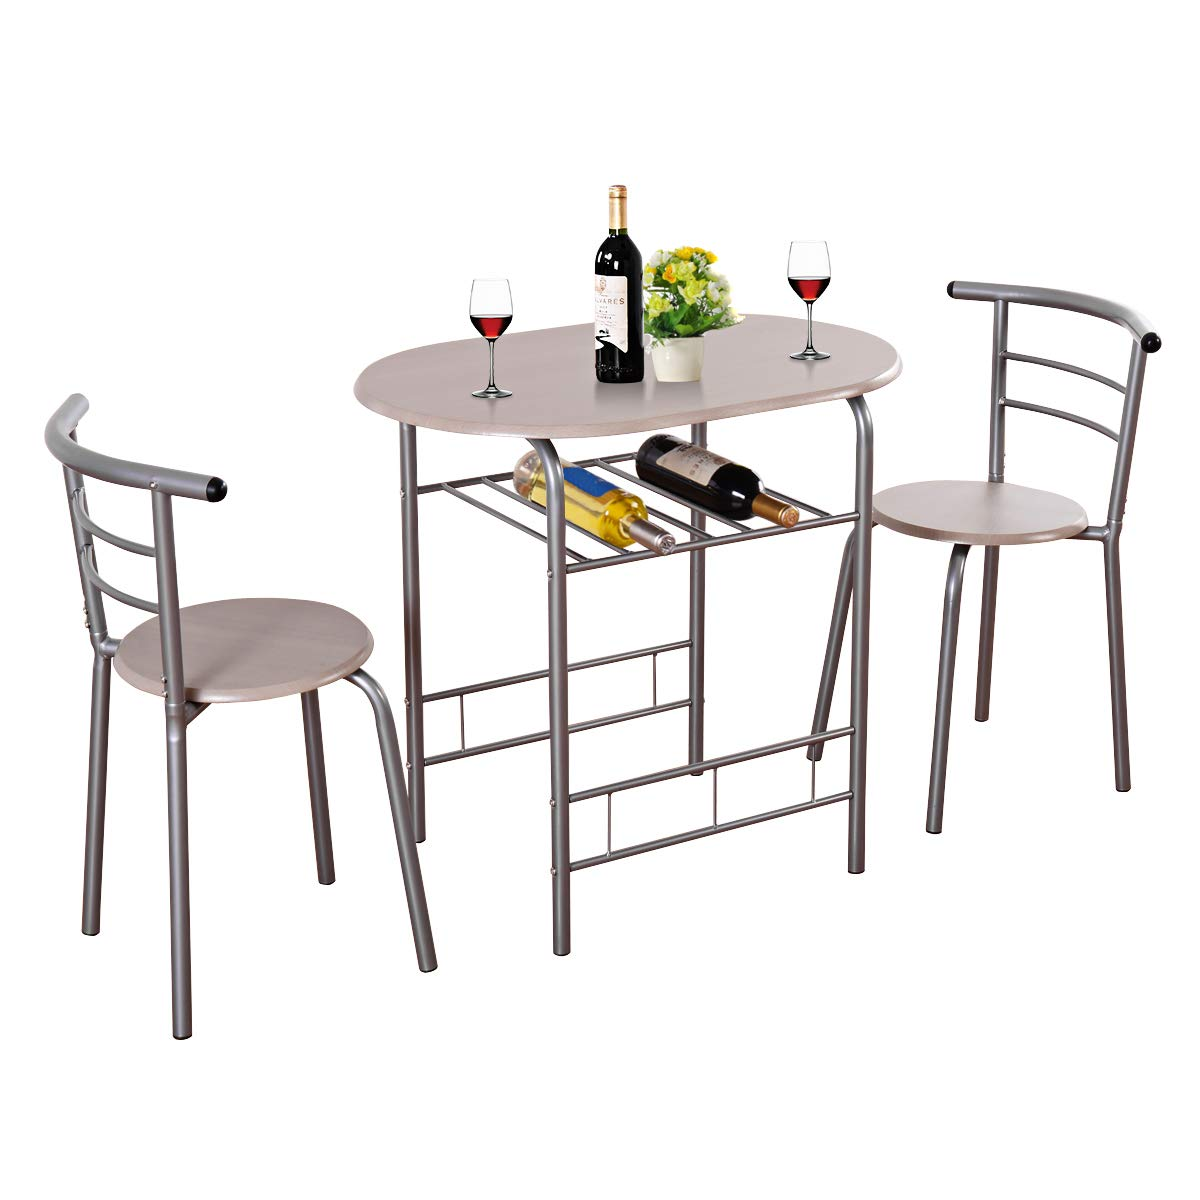 Giantex 3 Piece Dining Set Compact 2 Chairs and Table Set with Metal Frame and Shelf Storage Bistro Pub Breakfast Space Saving for Apartment and Kitchen (Beech) by Giantex